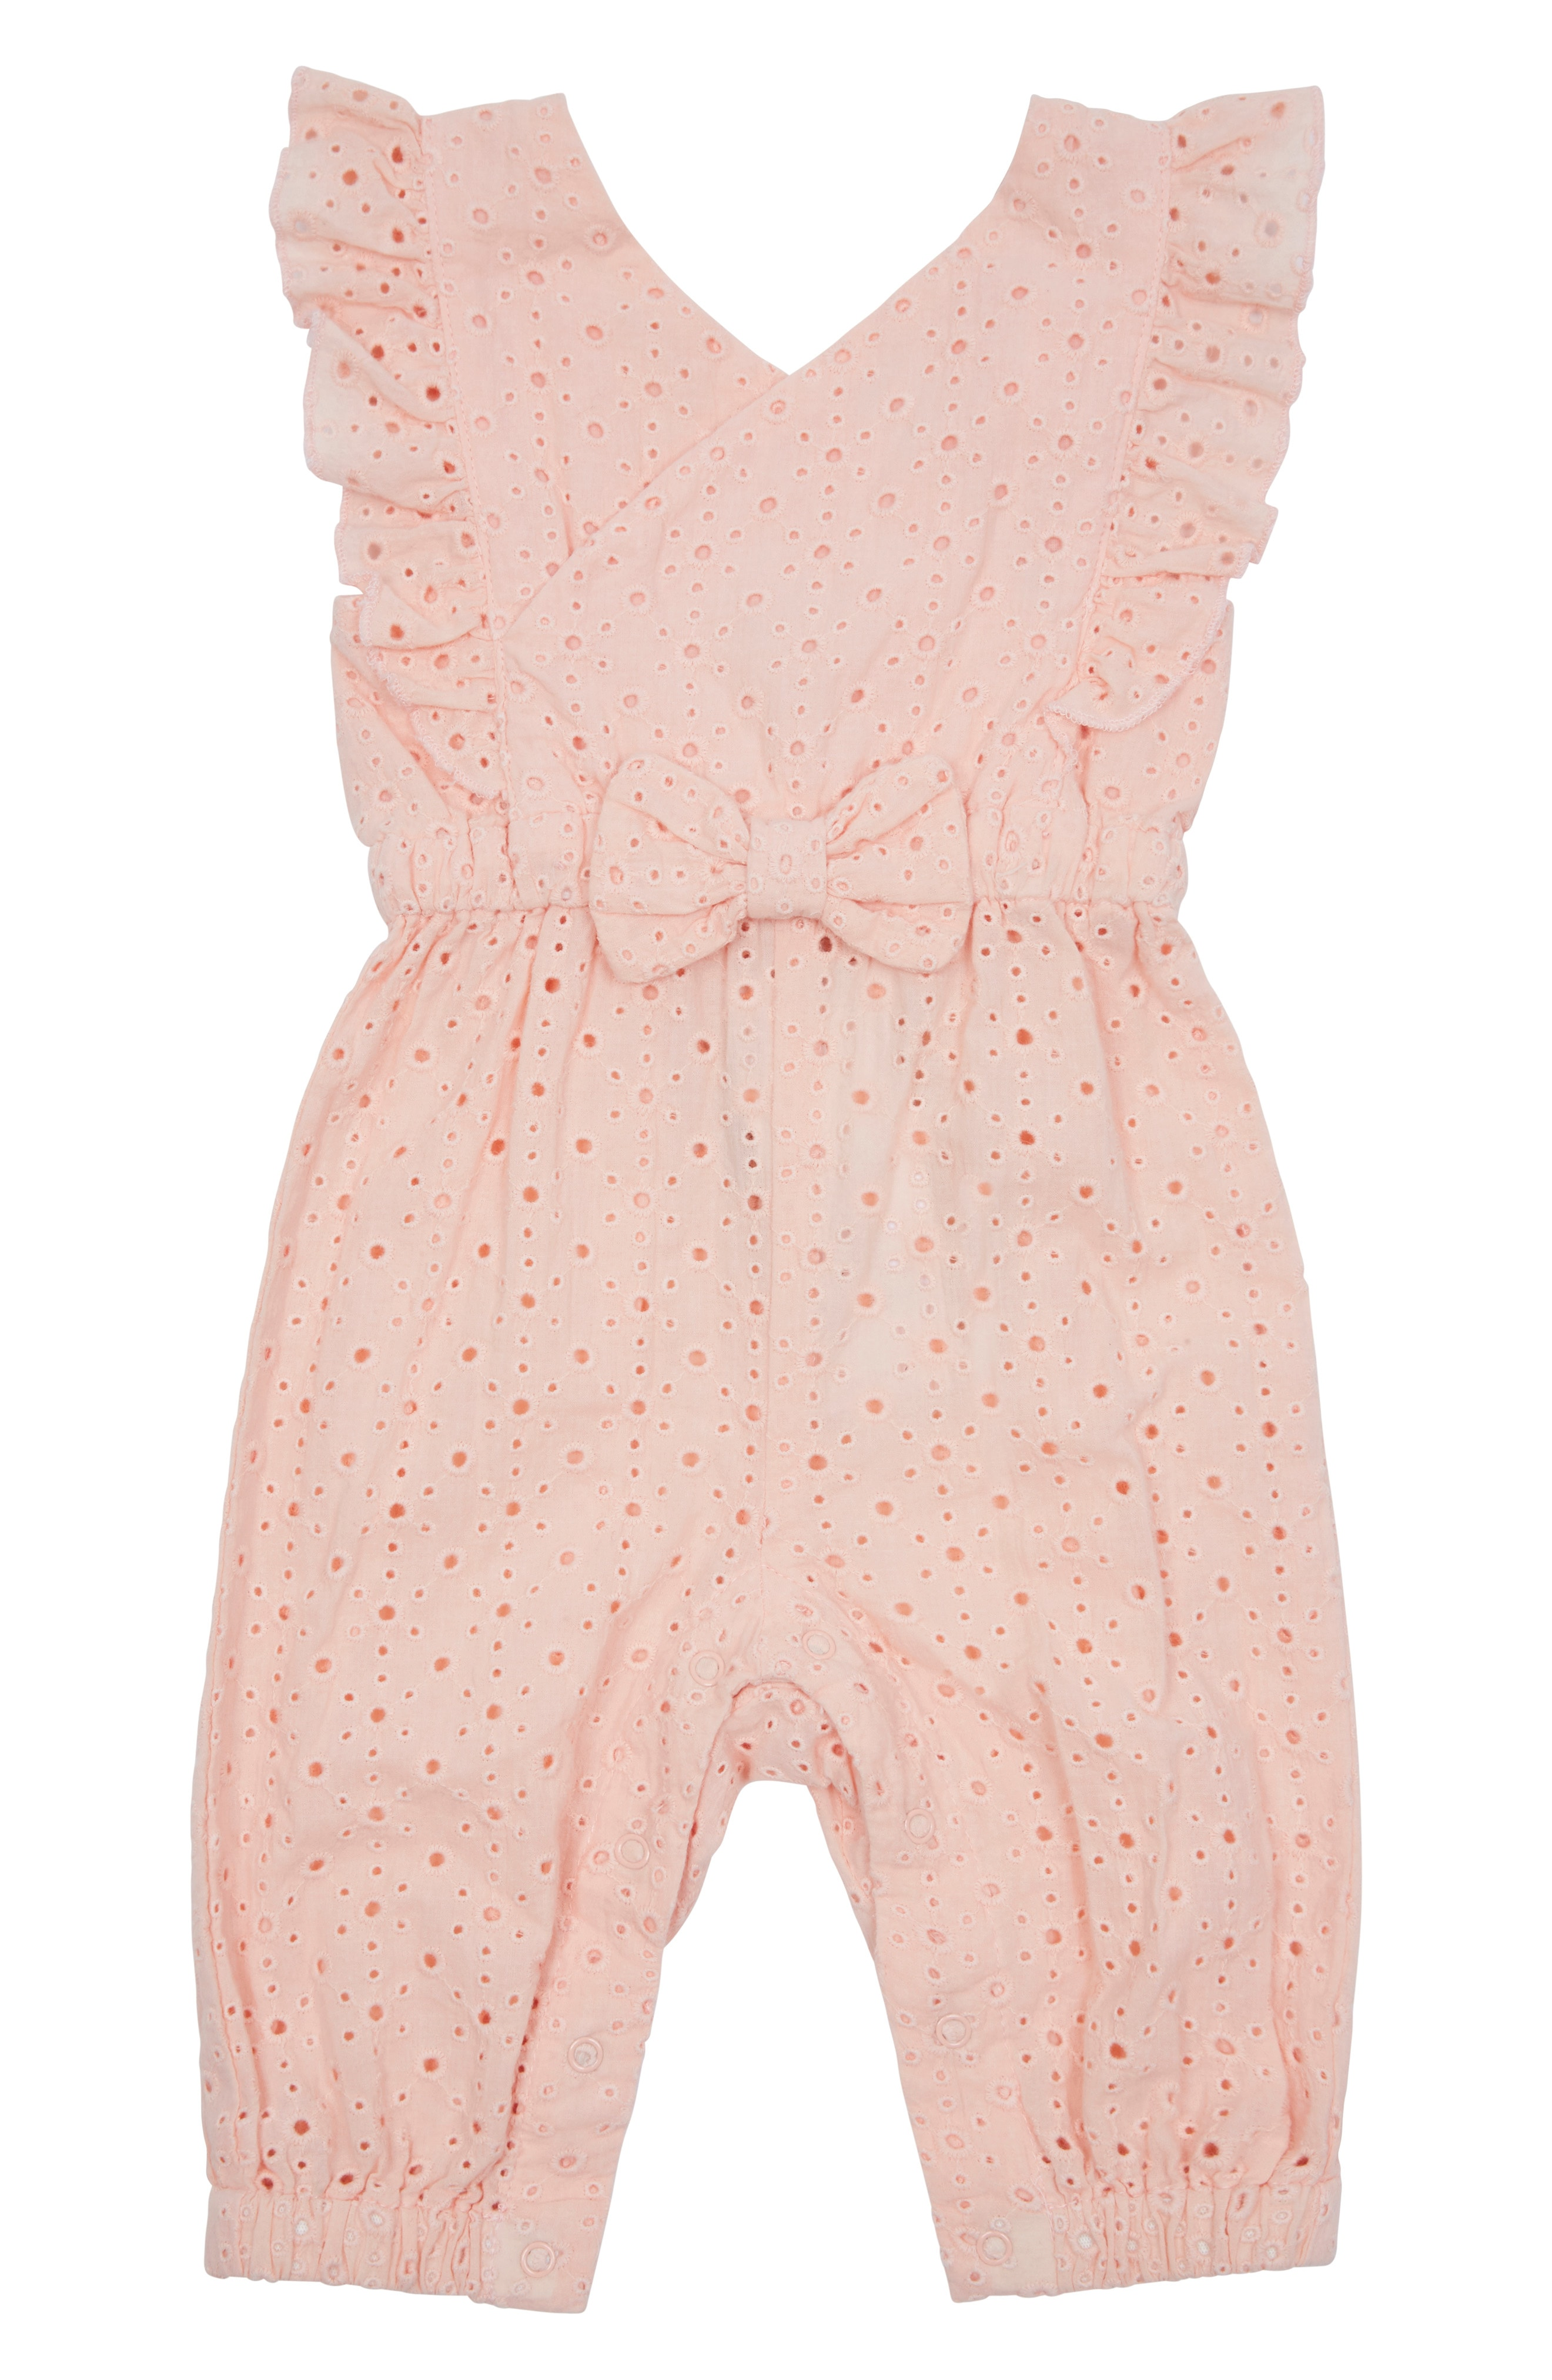 Baby Girl Rompers & One-Pieces: Ruffle, Woven & Print | Nordstrom